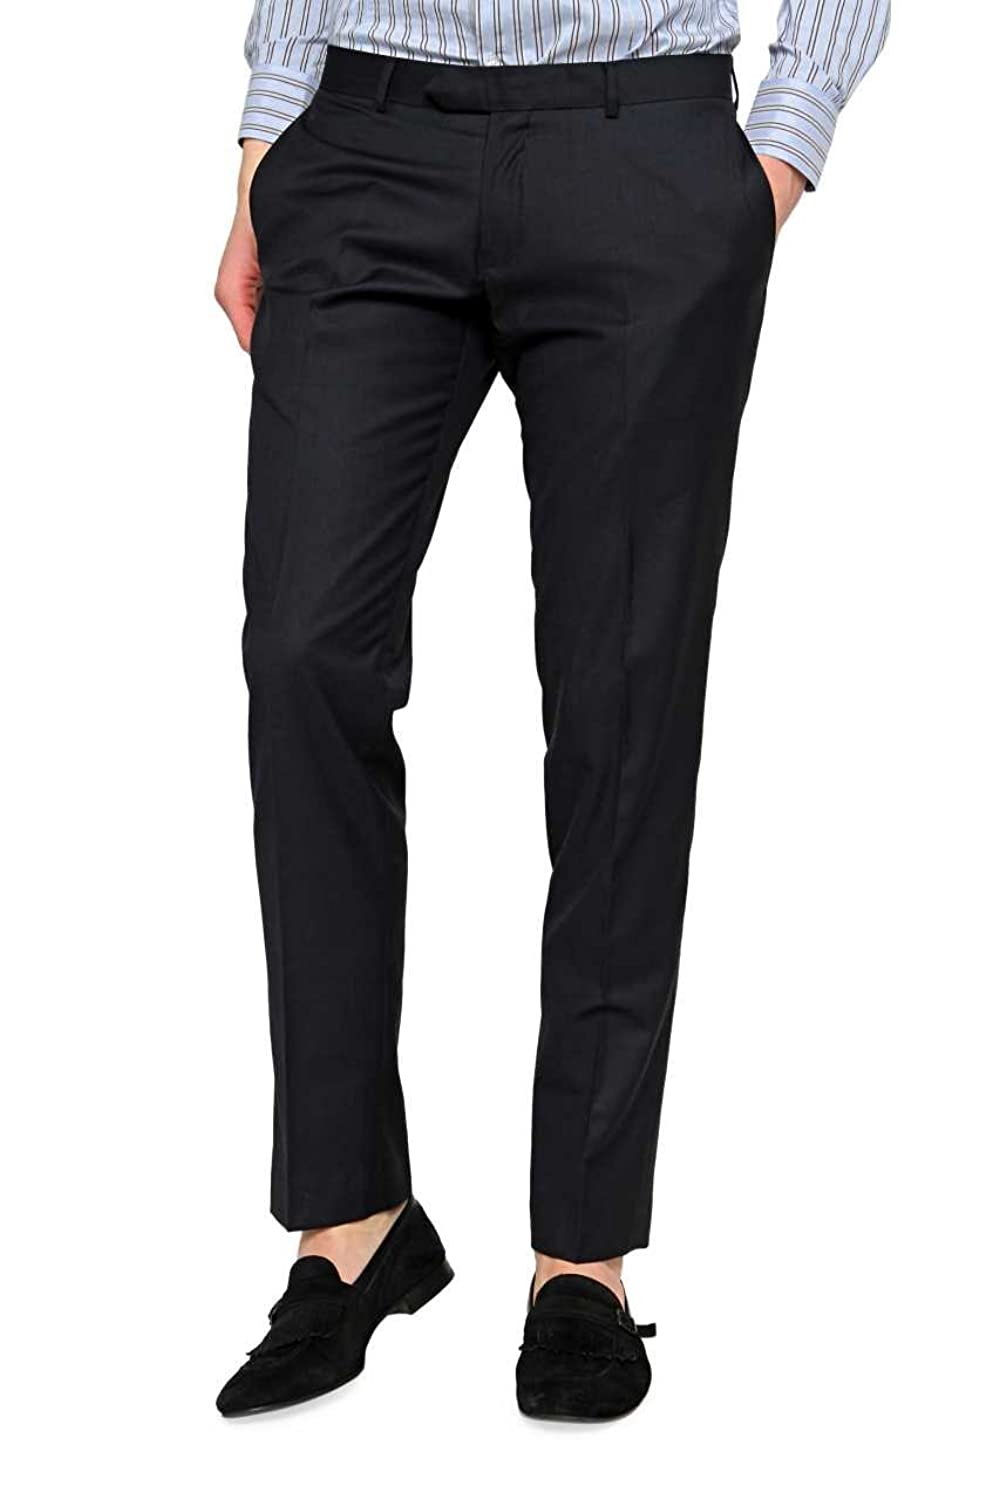 David Naman Business Pants BENNO, Color: Dark blue